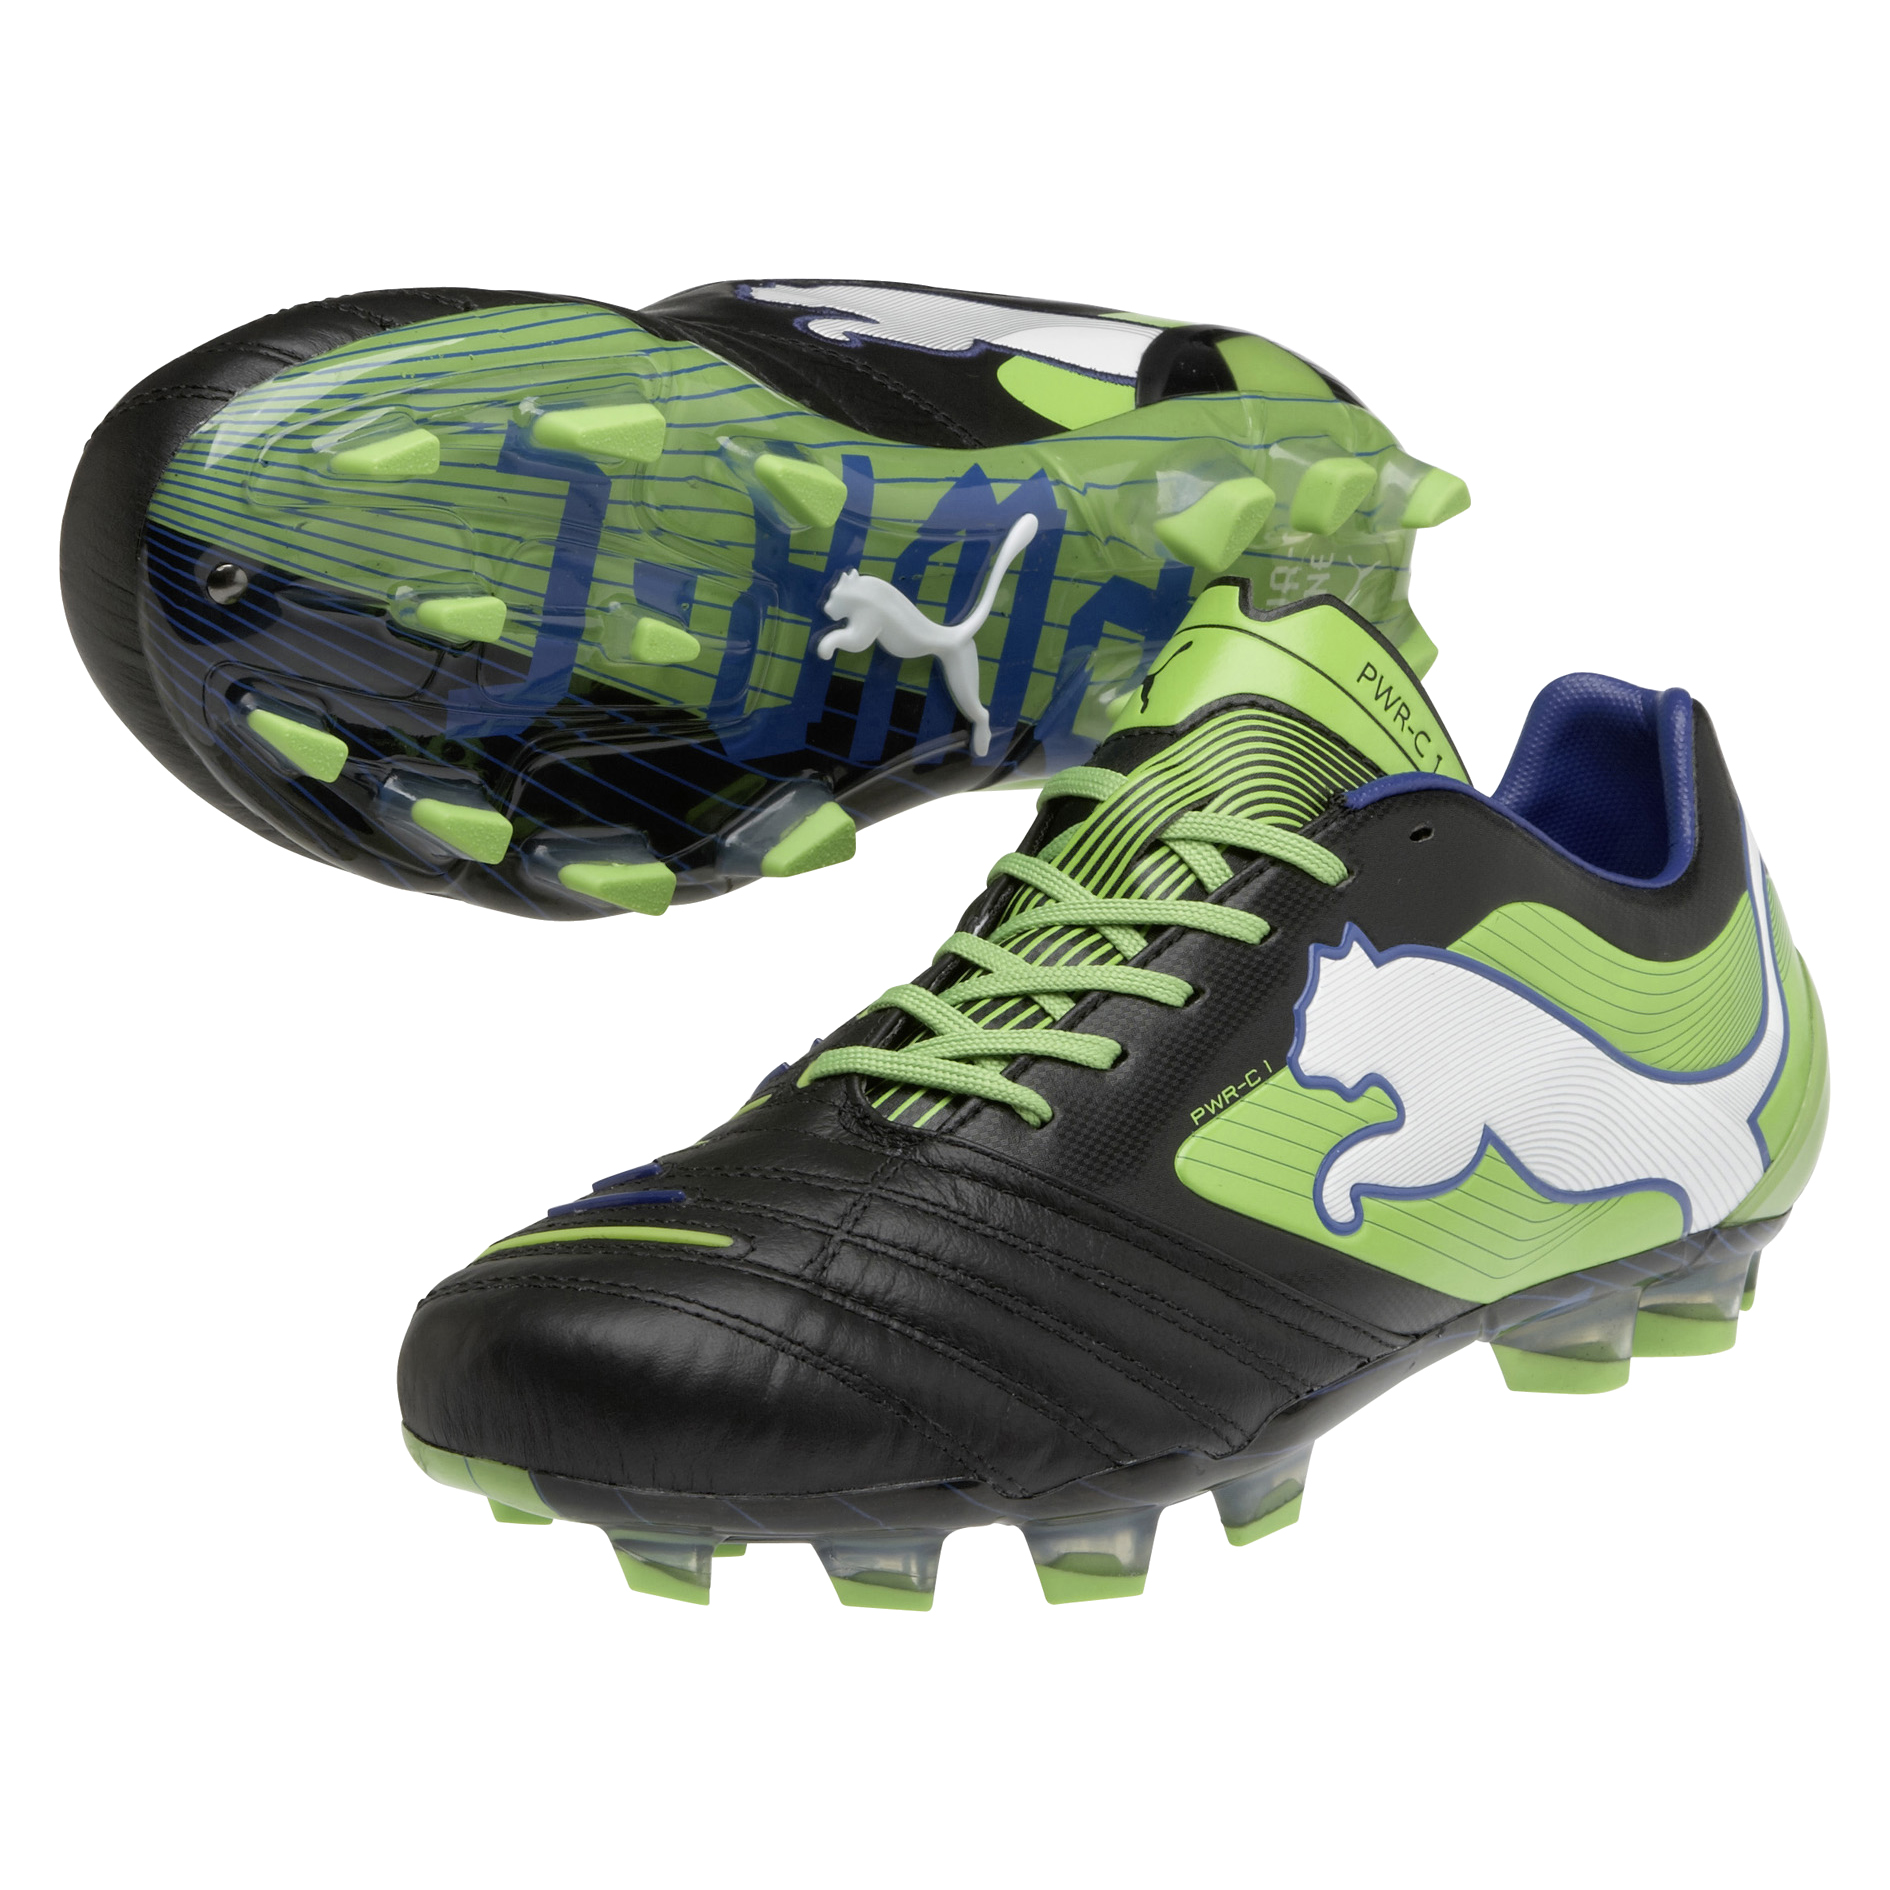 Puma PowerCat 1 Firm Ground Football Boots - Black/Jasmin Green/Monaco Blue